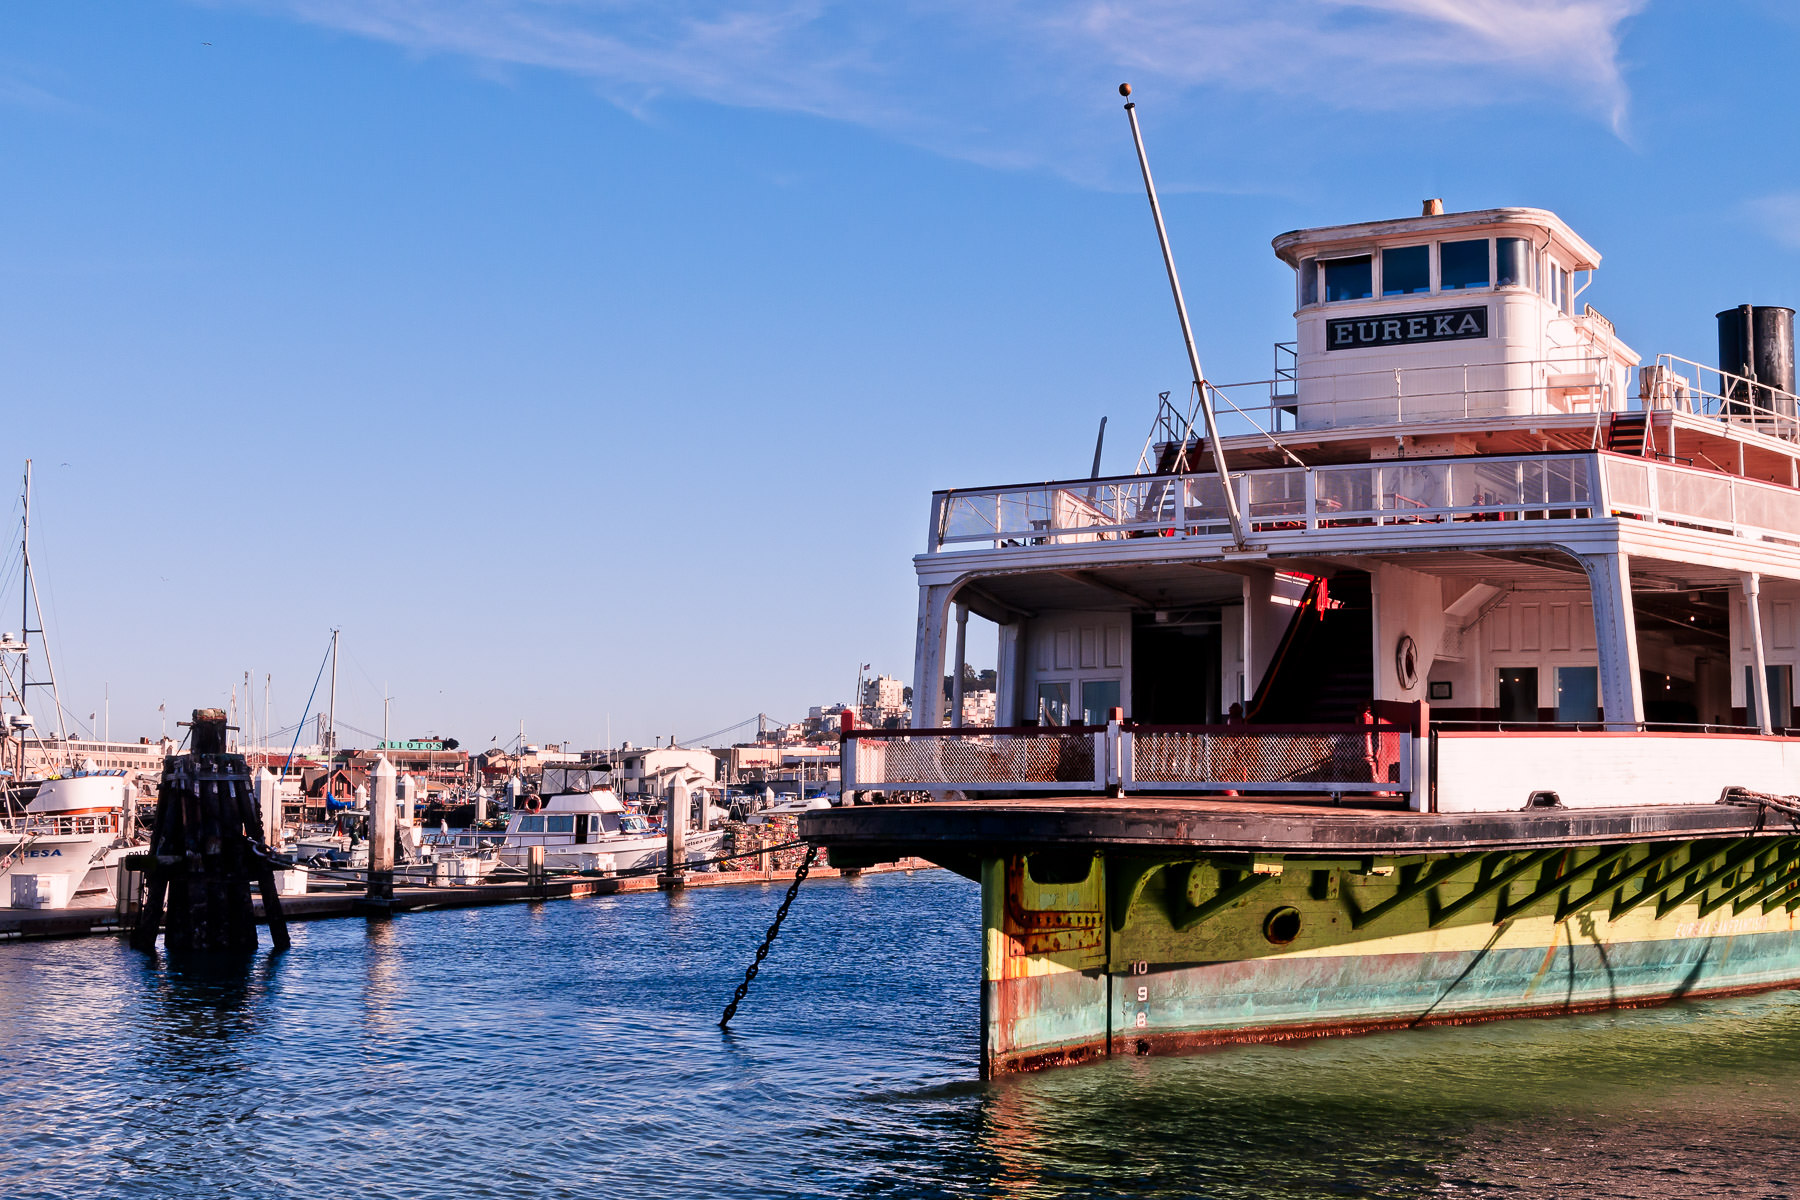 The 1890 side-wheel paddle steamboat Eureka, which originally carried passengers and railcars between Tiburon and San Francisco and now resides in that city's San Francisco Maritime National Historical Park.